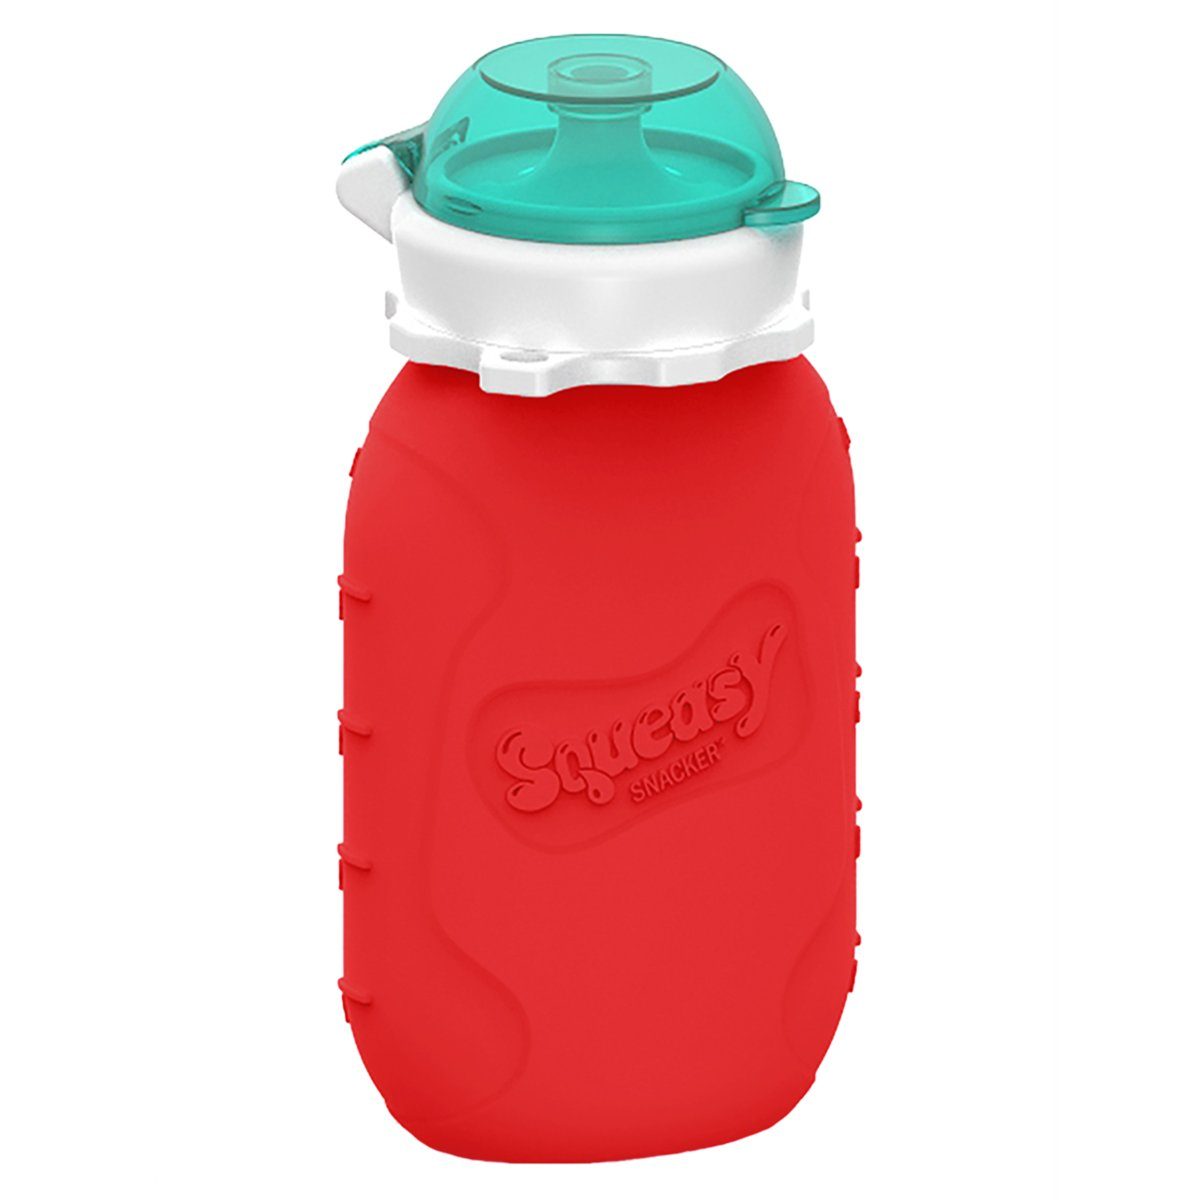 Red 6 oz Squeasy Snacker Spill Proof Silicone Reusable Food Pouch - for Both Soft Foods and Liquids - Water, Apple Sauce, Yogurt, Smoothies, Baby Food - Dishwasher Safe